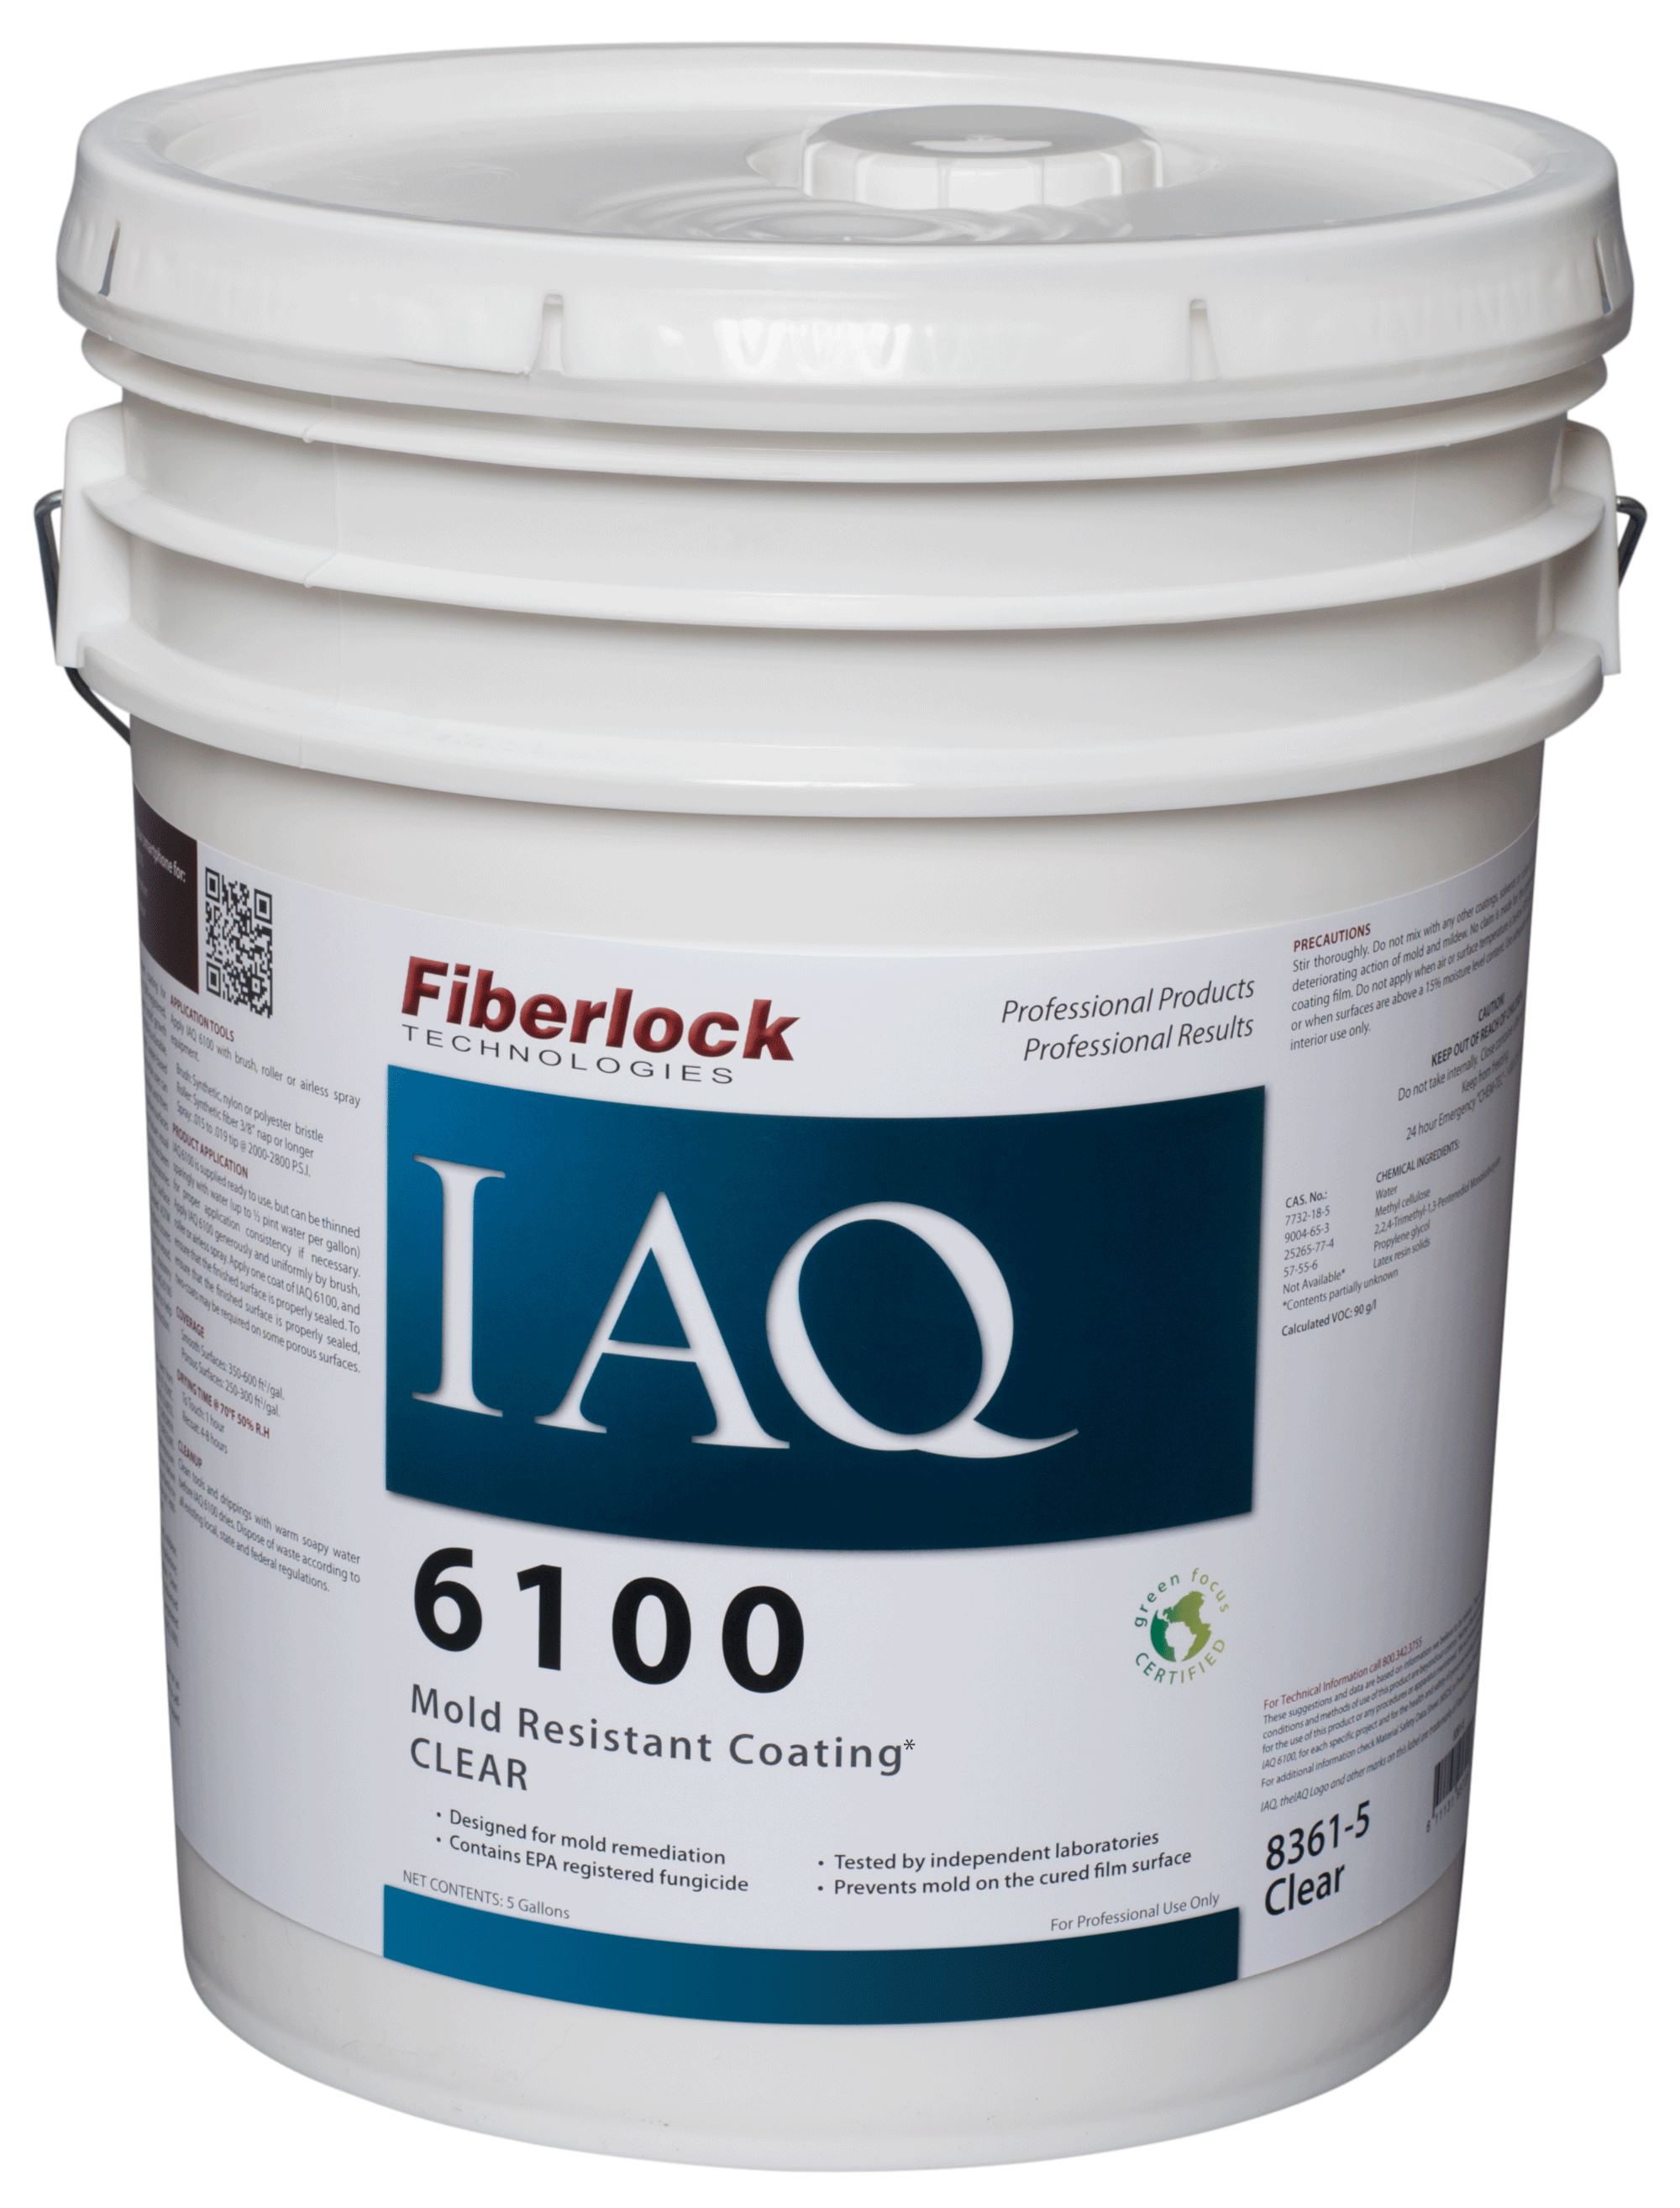 Fiberlock IAQ 6100 Coating/CLEAR FINISH (5 gal.)